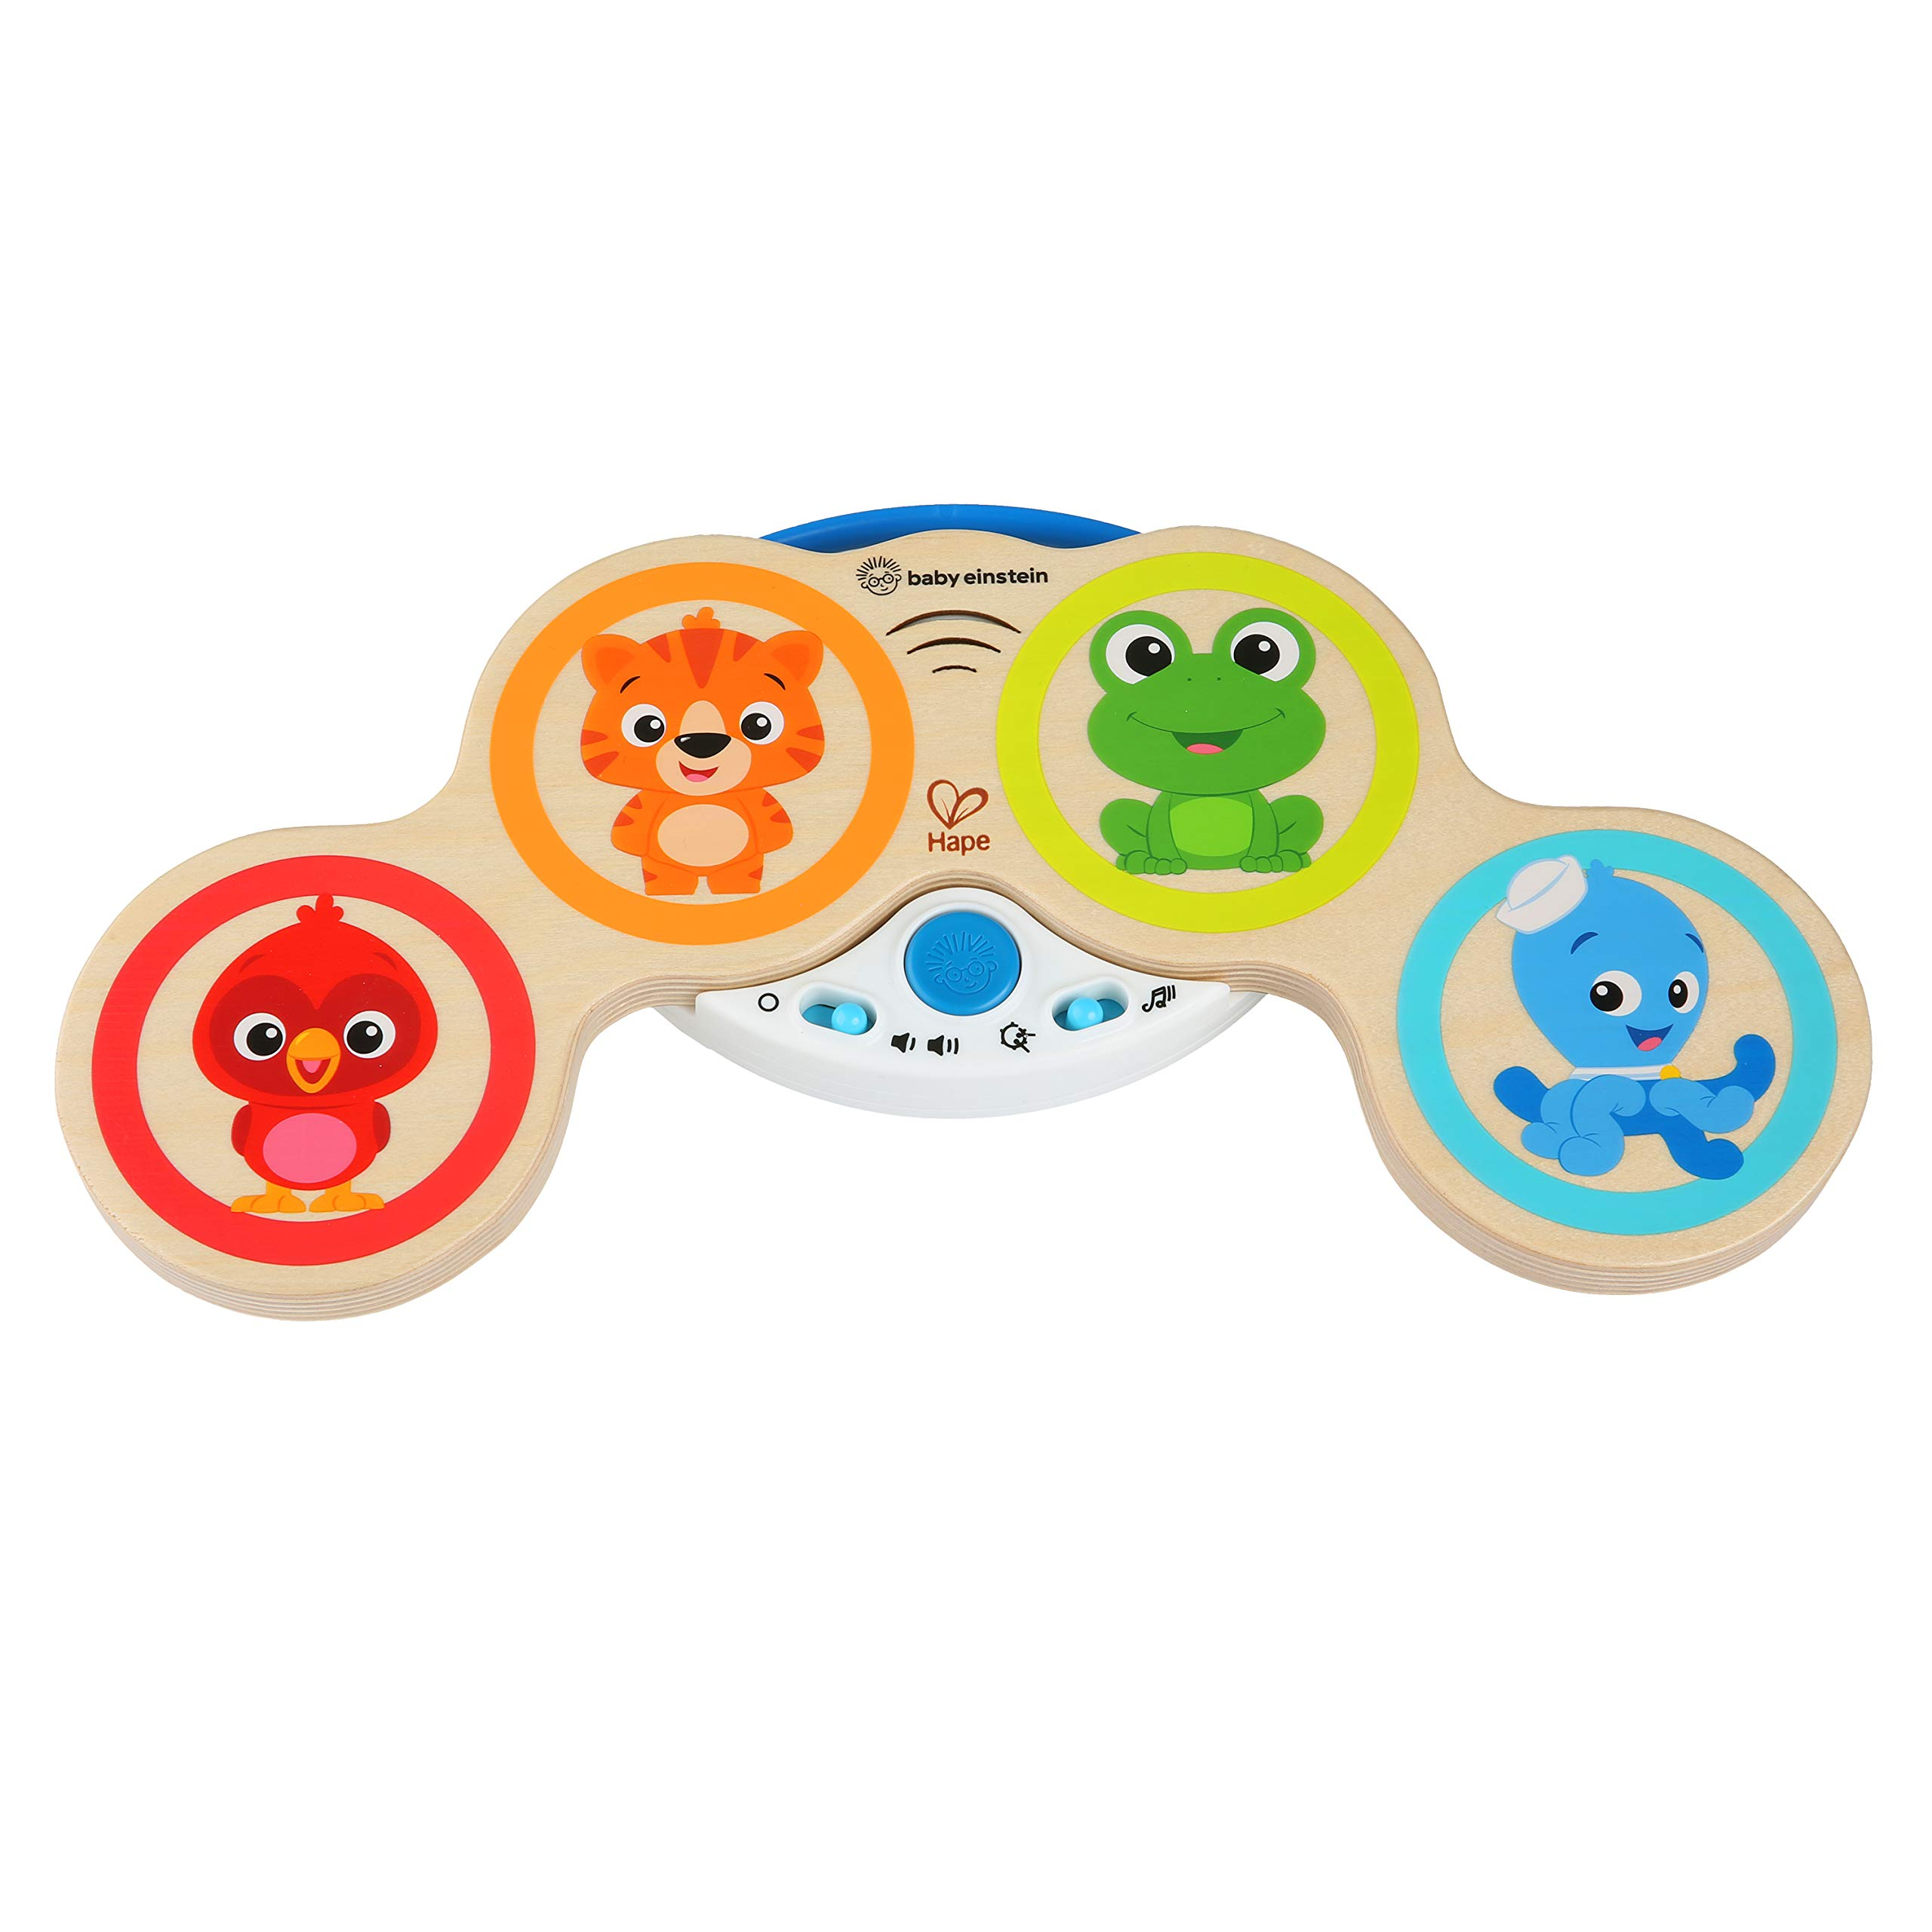 Baby Einstein Magic Touch Drums Wooden Drum Musical Toy, Ages 6 months and up by Baby Einstein